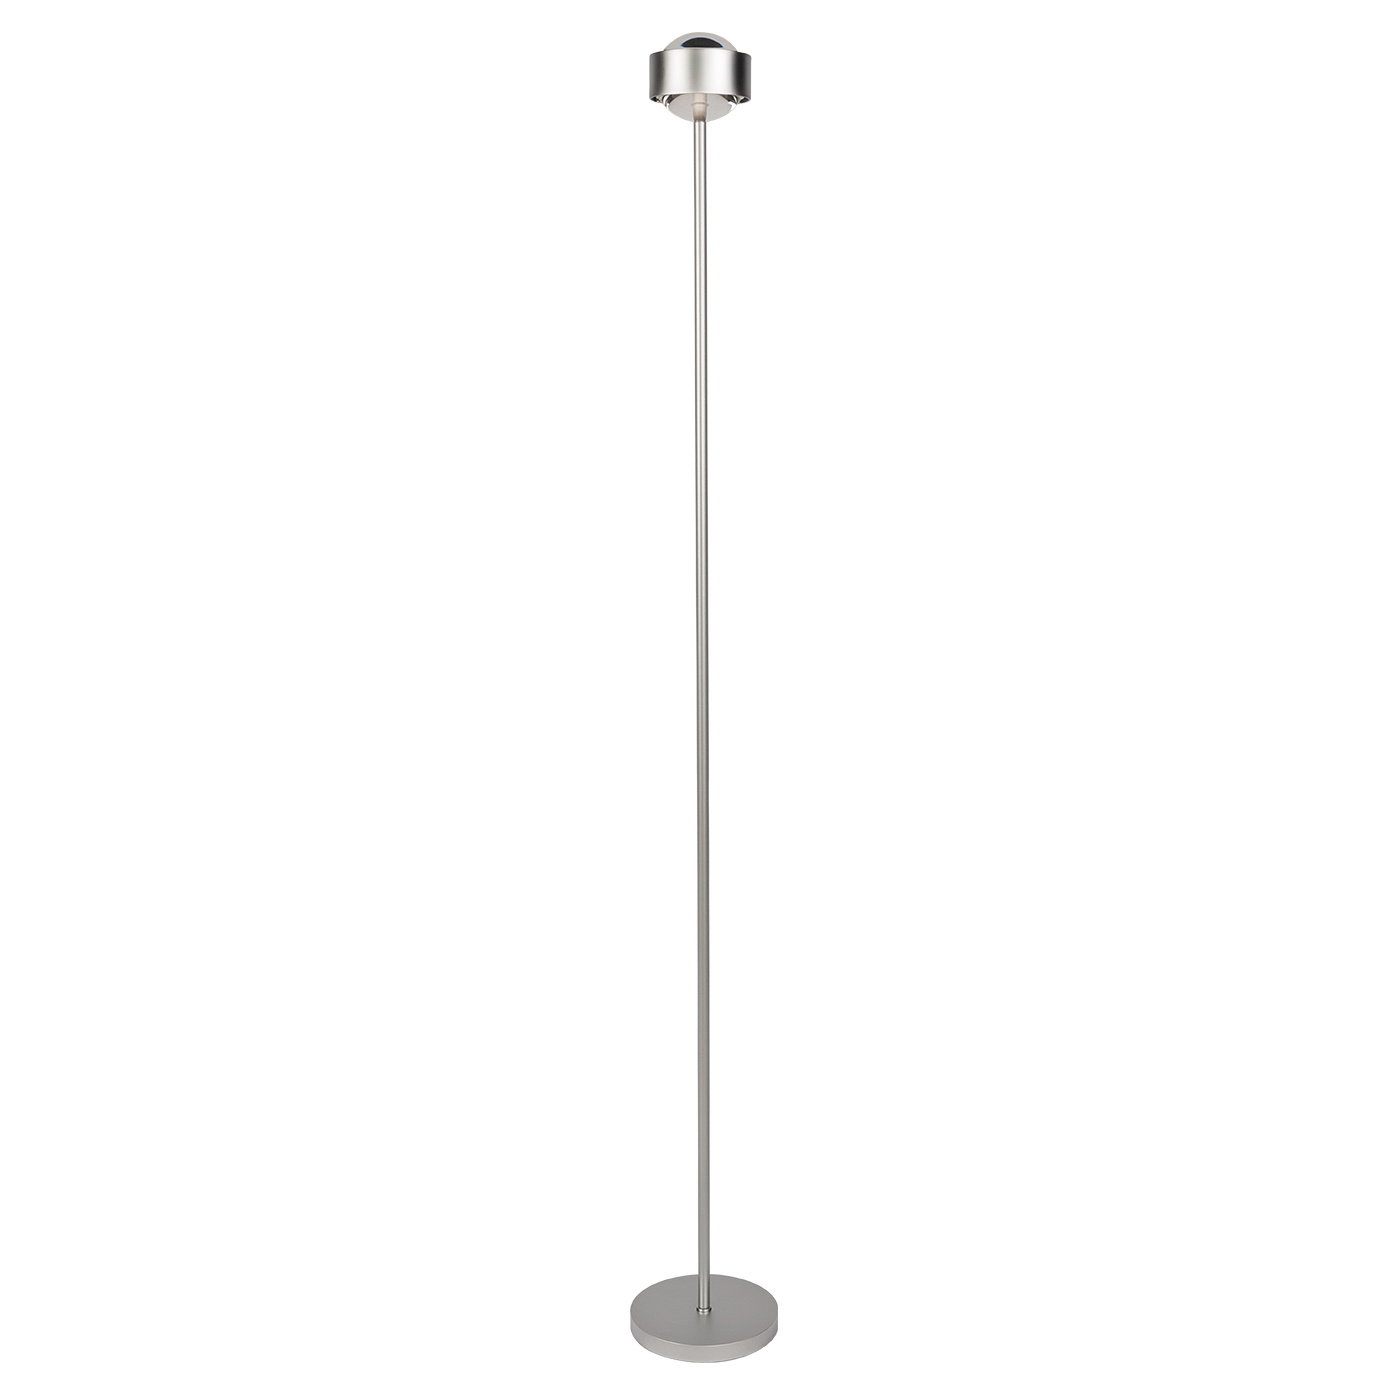 Top Light PUK Eye Floor Halogen